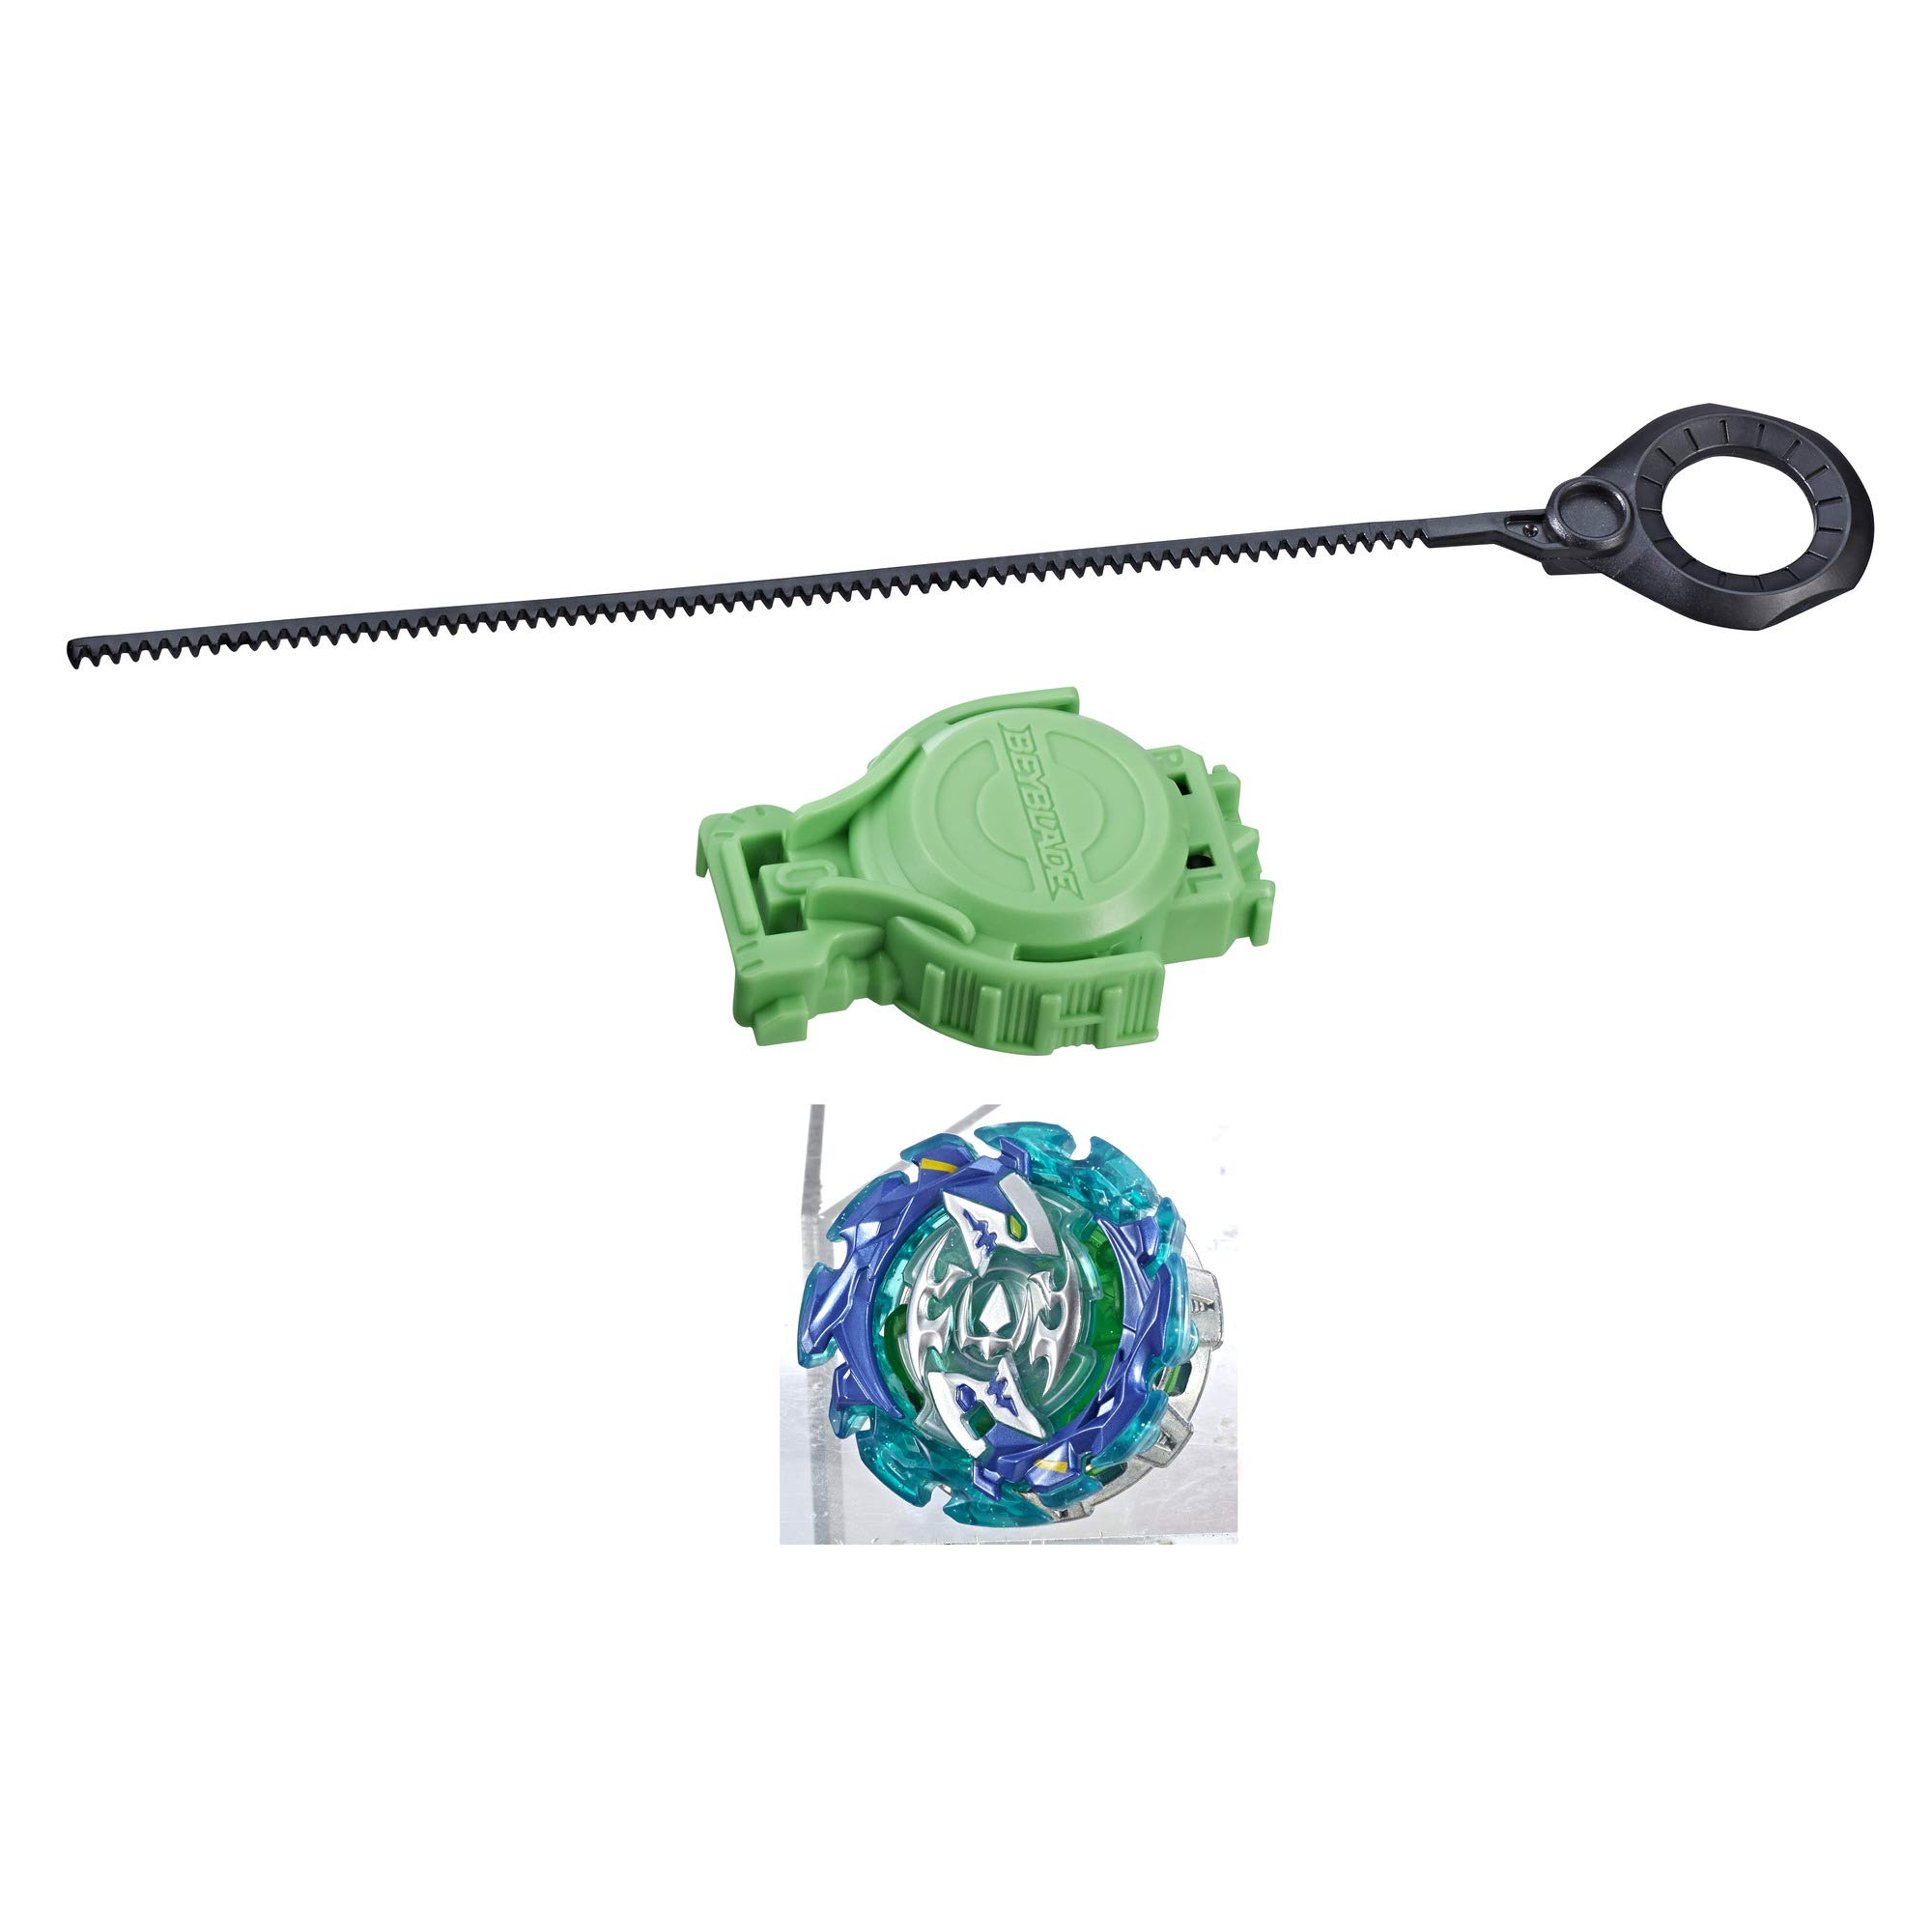 BEYBLADE Burst Slingshock Rip Fire Starter Pack Forneus F4: Light-Up Top with Right/Left-Spin Launcher, Age 8+ by BEYBLADE